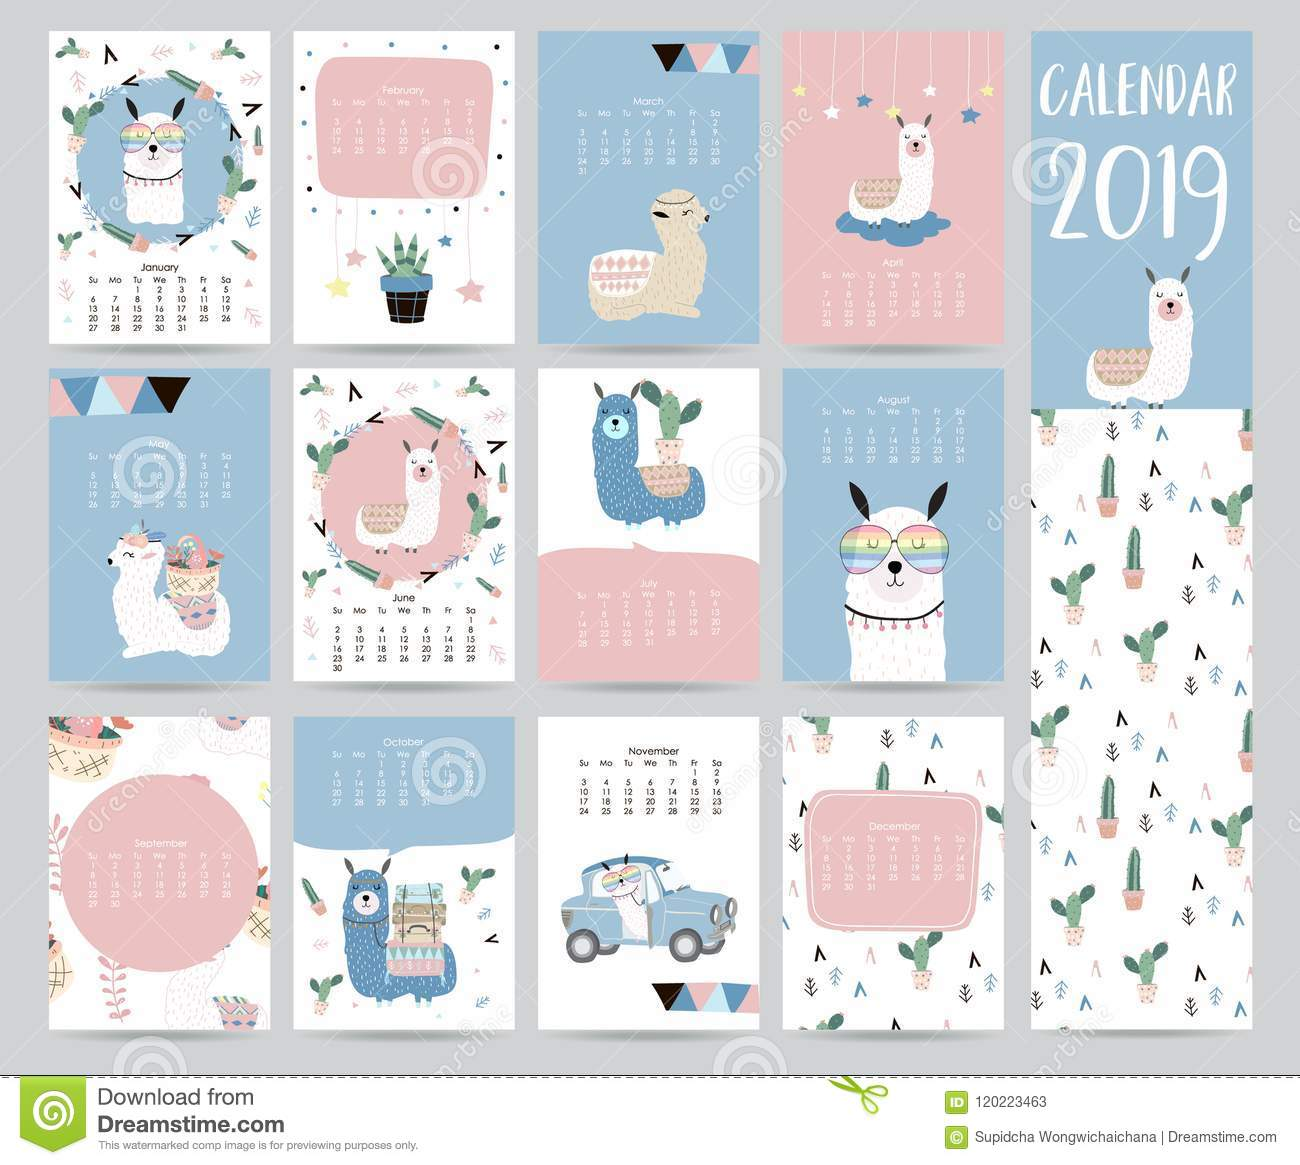 photograph relating to Cute Monthly Calendar Printable named Adorable Month to month Calendar 2019 With Llama,baggage,cactus